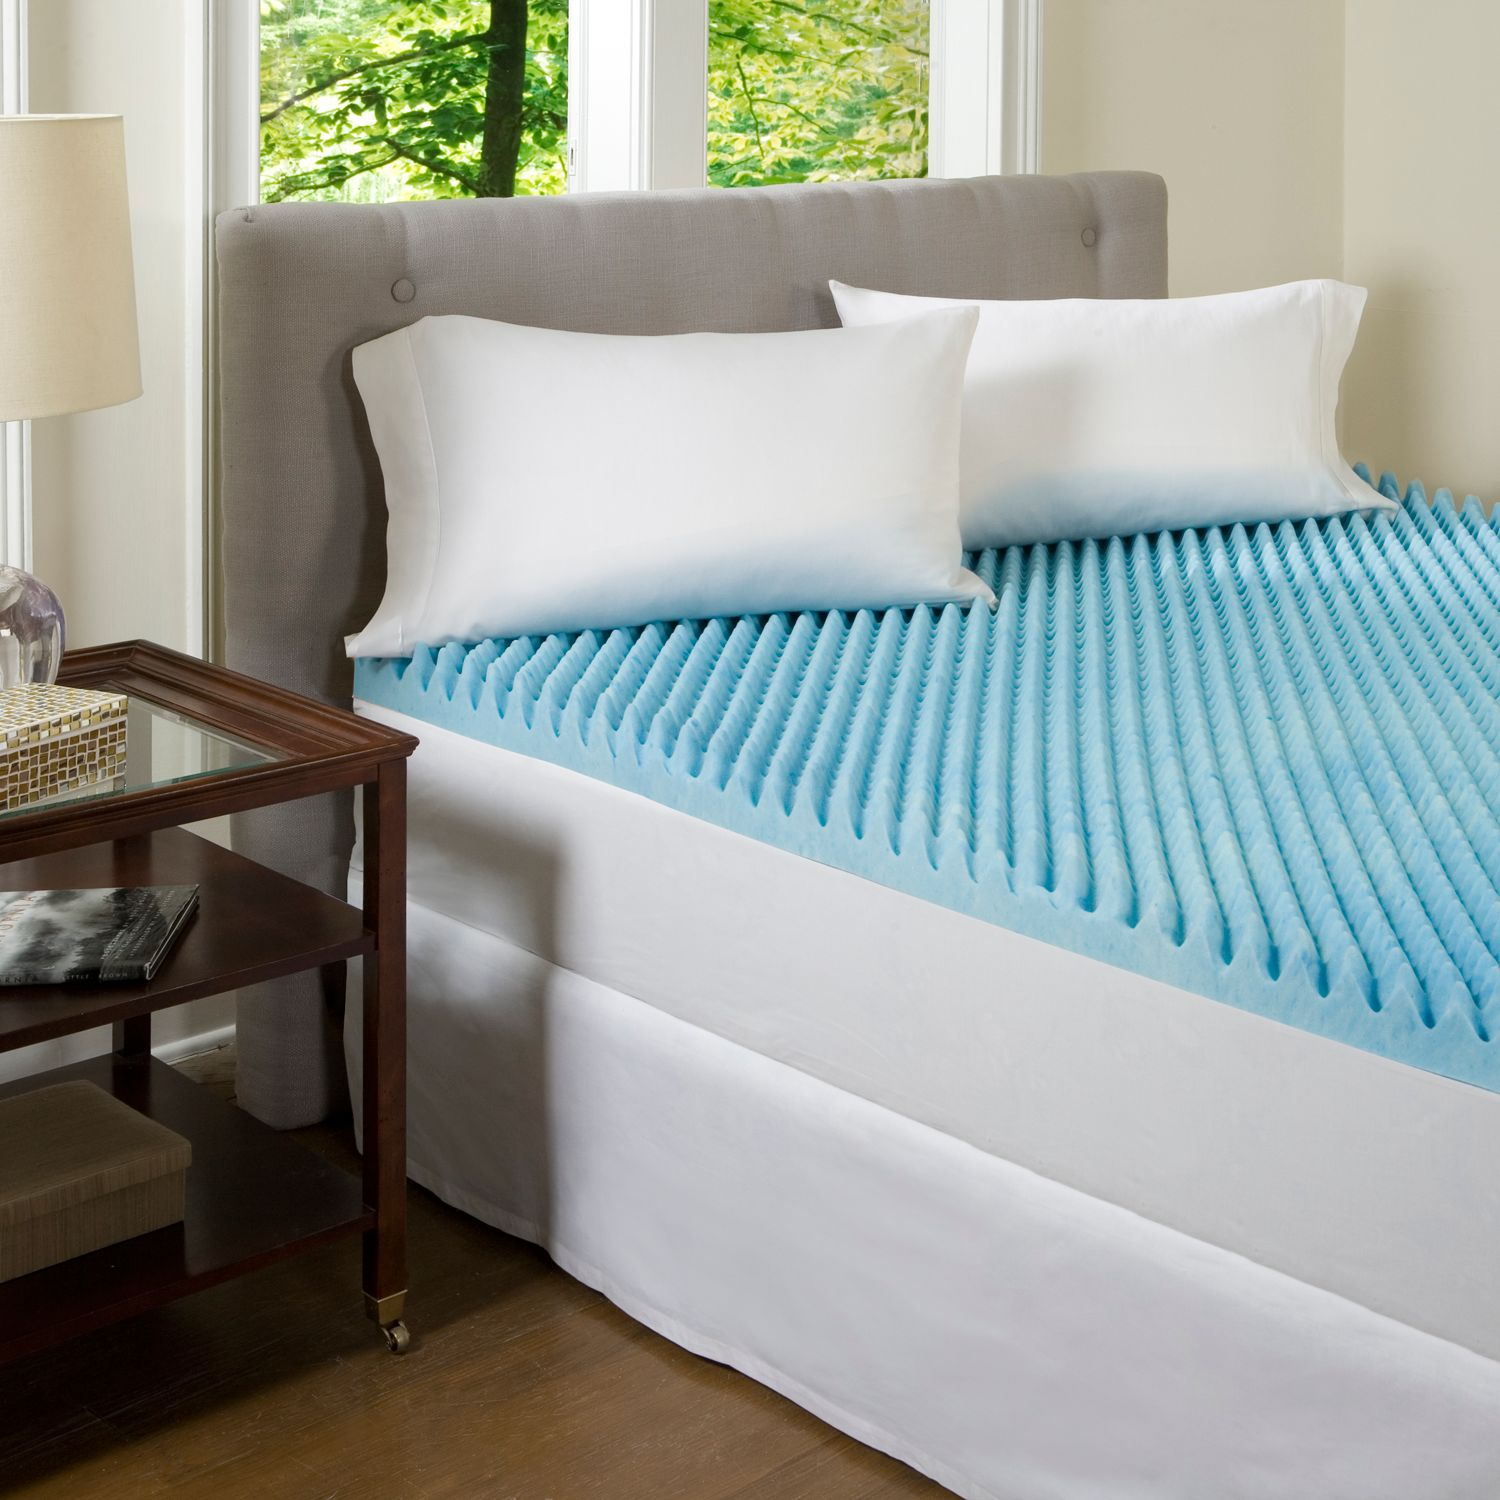 textured gel memory foam mattress topper